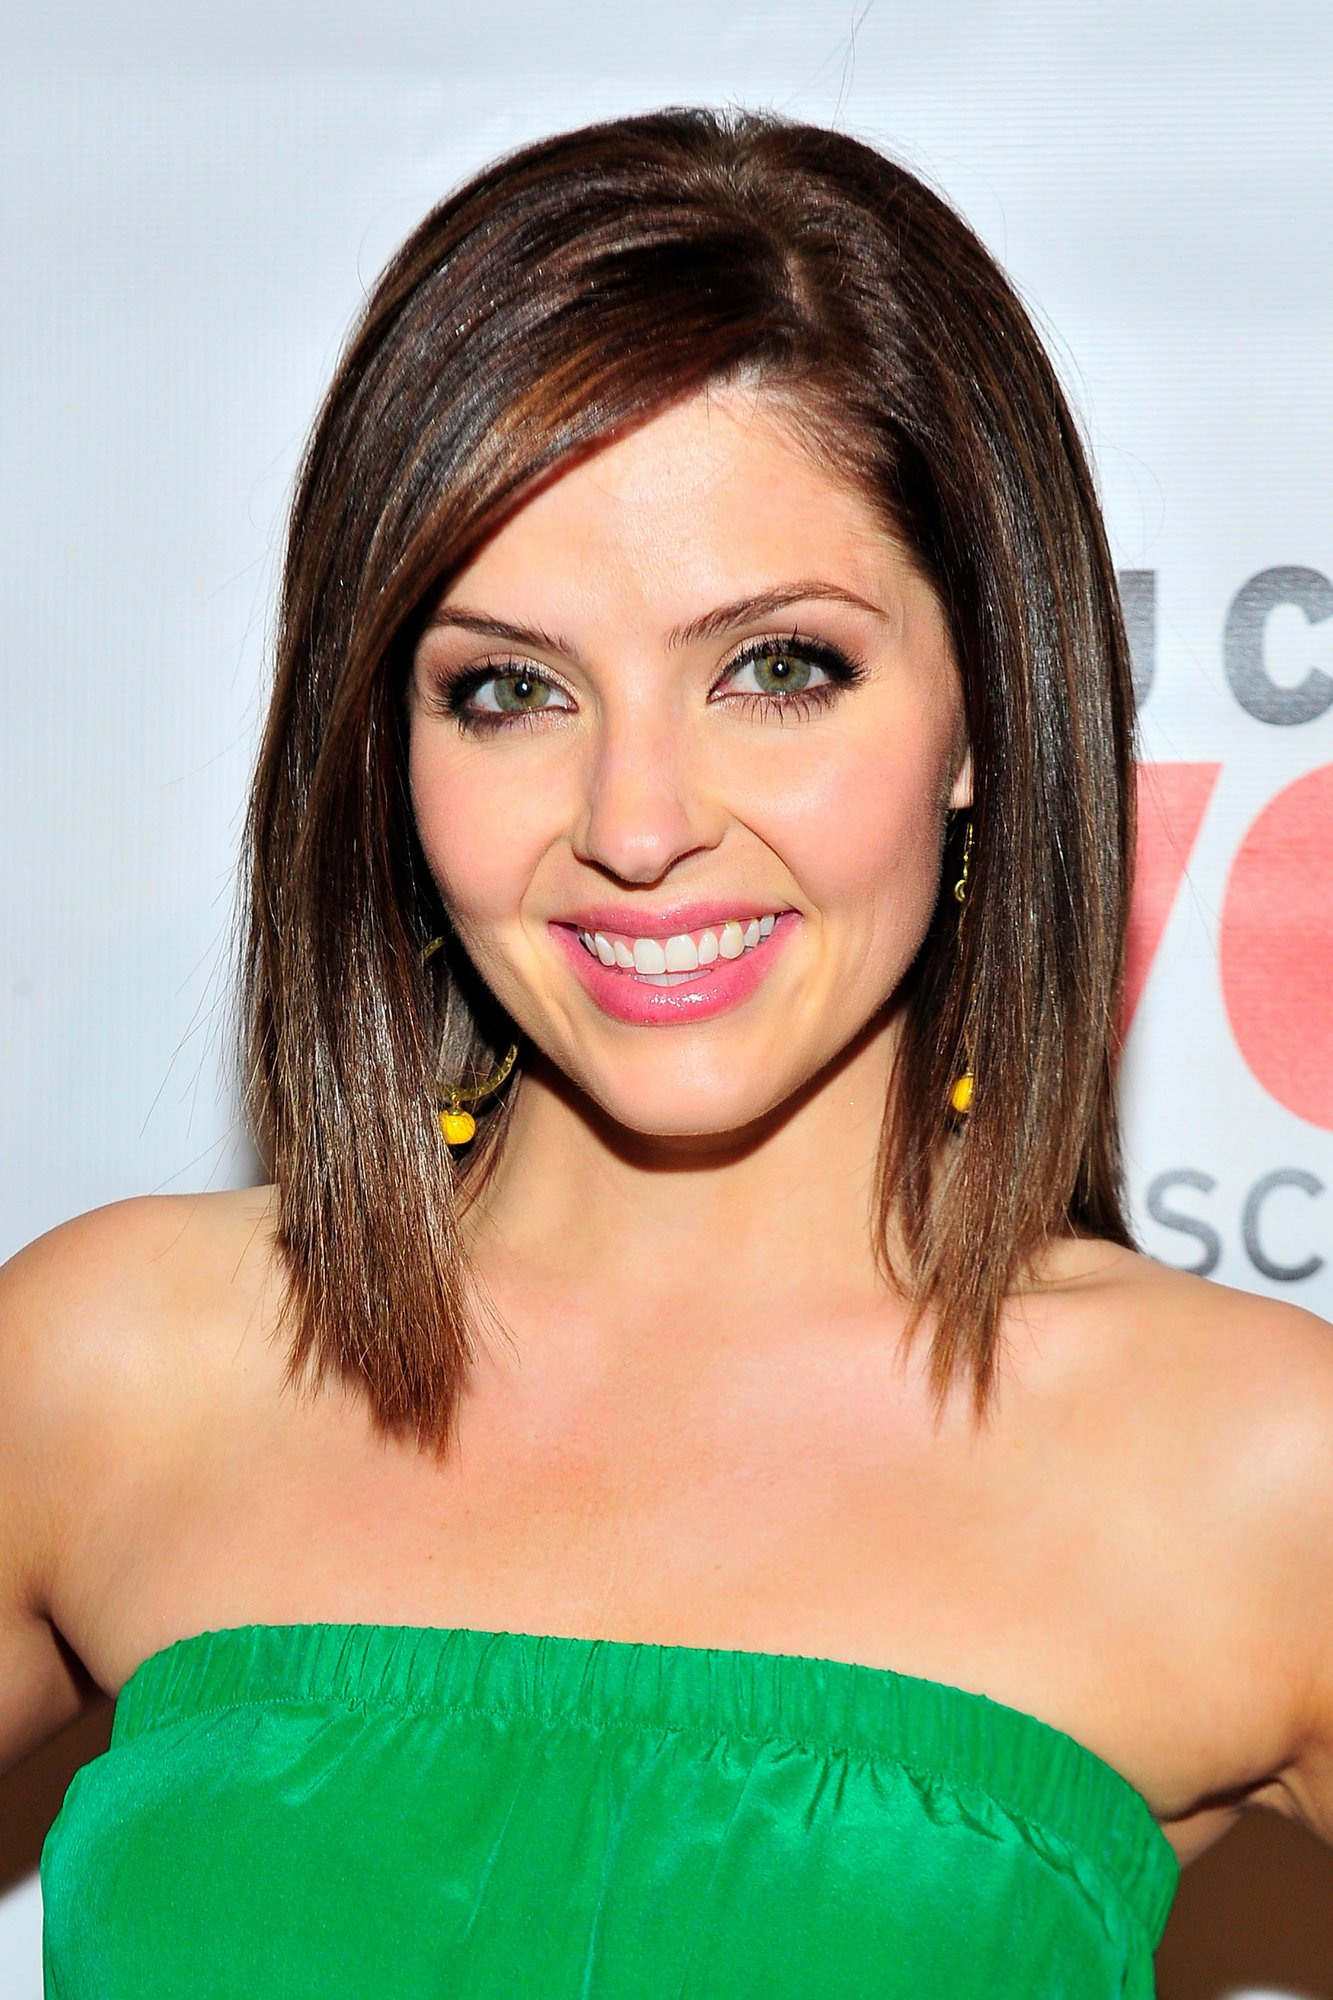 jen lilley days of our livesjen lilley insta, jen lilley instagram, jen lilley, jen lilley movies, jen lilley twitter, jen lilley singing, jen lilley and jason wayne, jen lilley days of our lives, jen lilley feet, jen lilley husband, jen lilley imdb, jen lilley net worth, jen lilley husband jason wayne, jen lilley biography, jen lilley height, jen lilley pregnant, jen lilley christmas movie, jen lilley facebook, jen lilley boyfriend, jen lilley hot